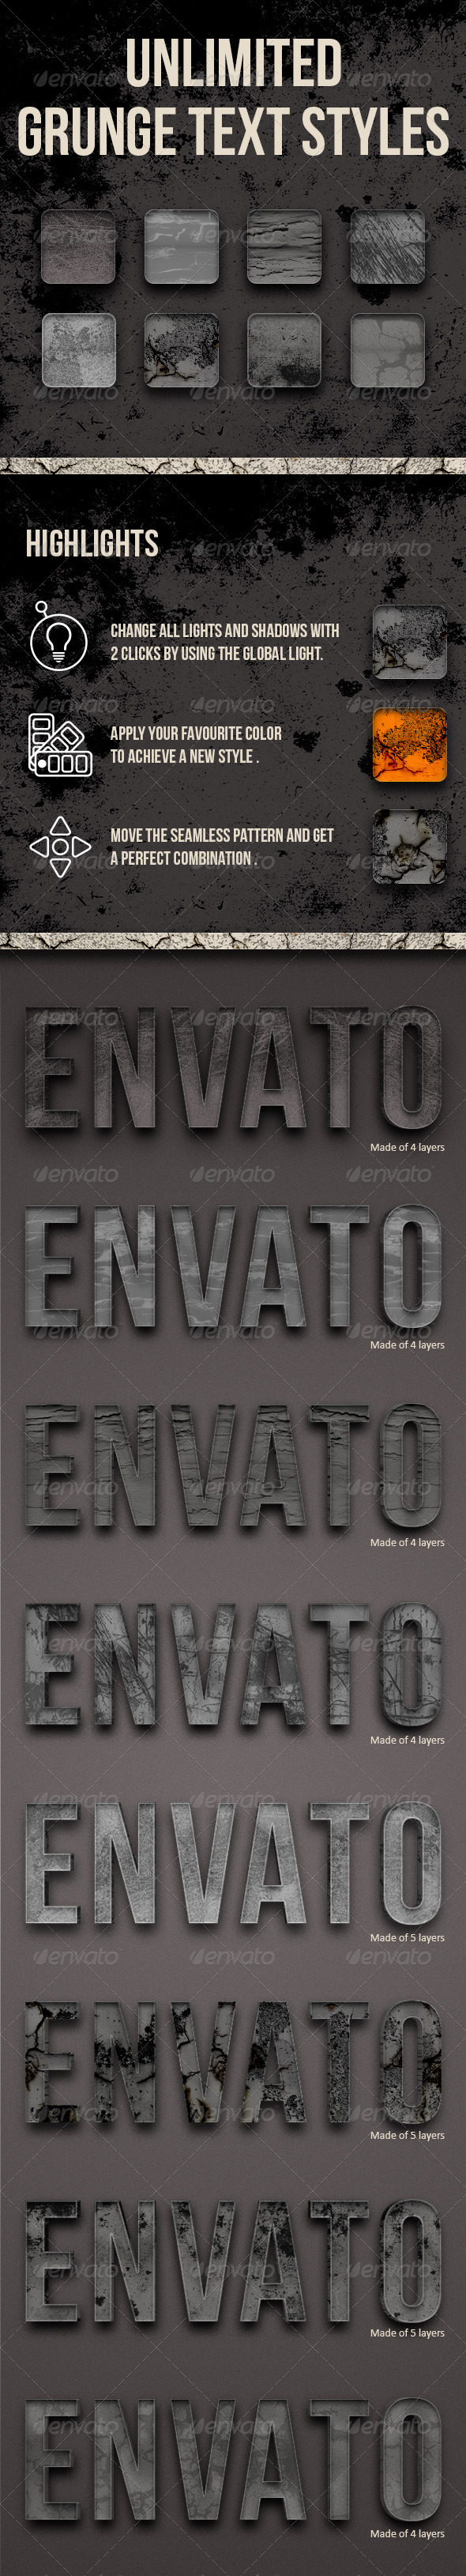 GraphicRiver Grunge Text Styles Unlimited 3522577